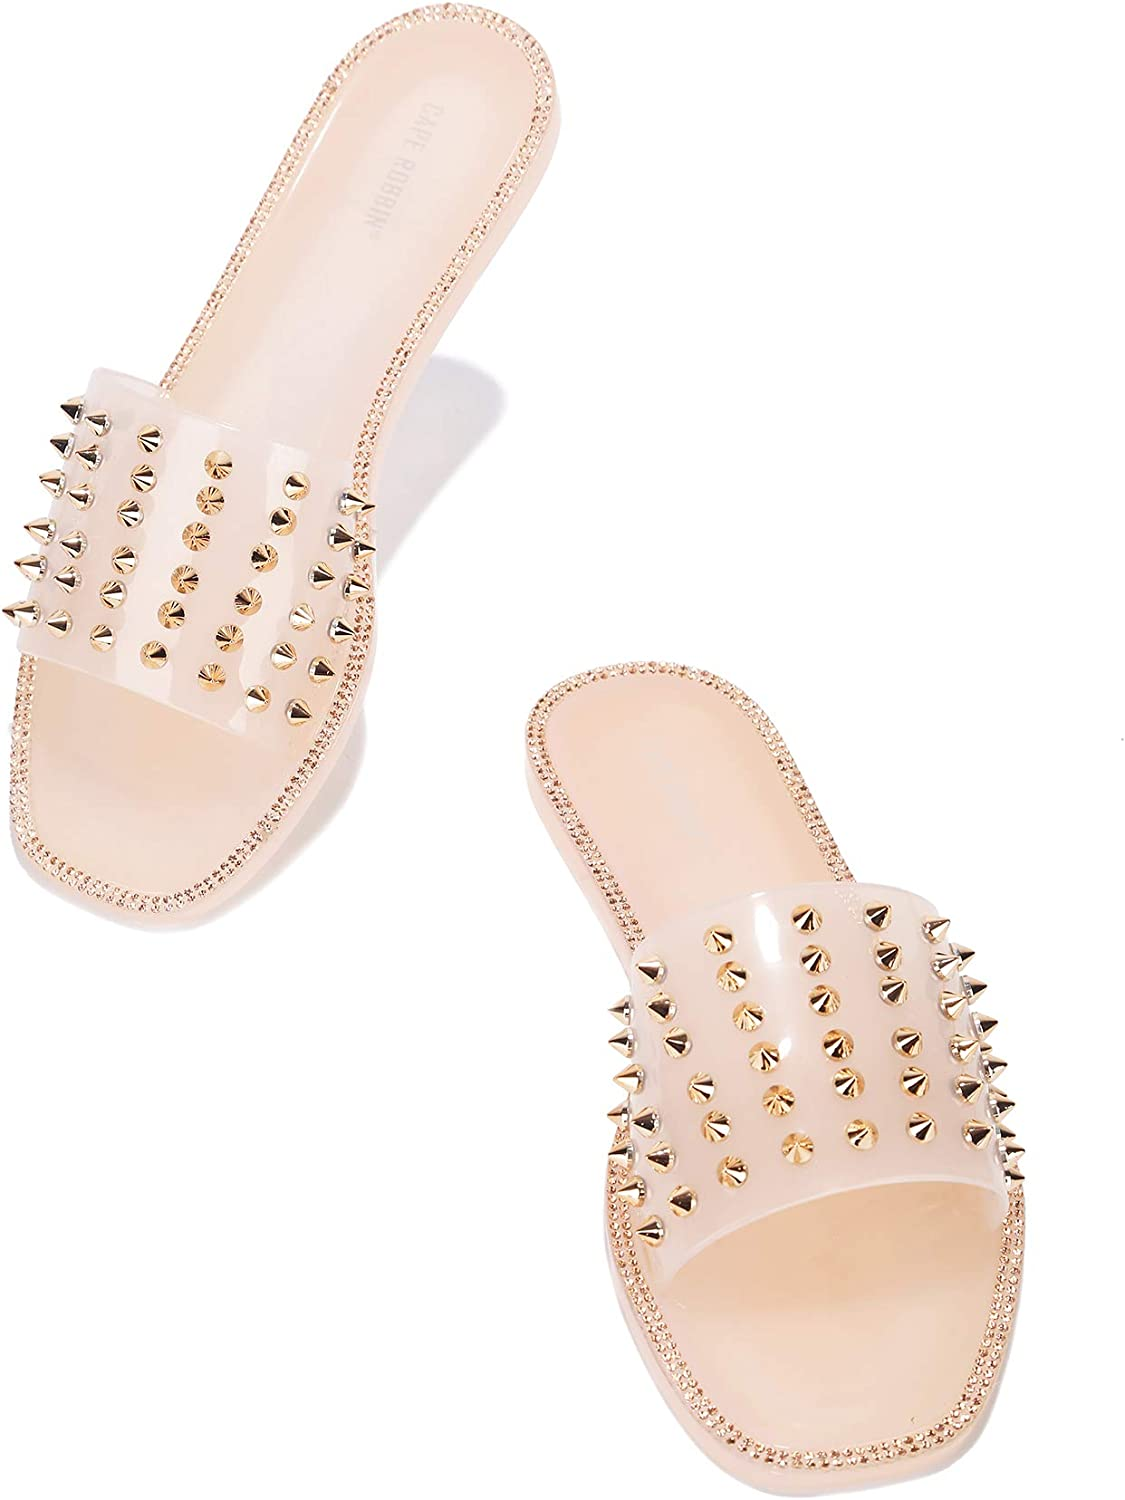 Cape Robbin Kamon Jelly Sandals Slides for Women, Womens Mules Slip On Shoes with Spikes